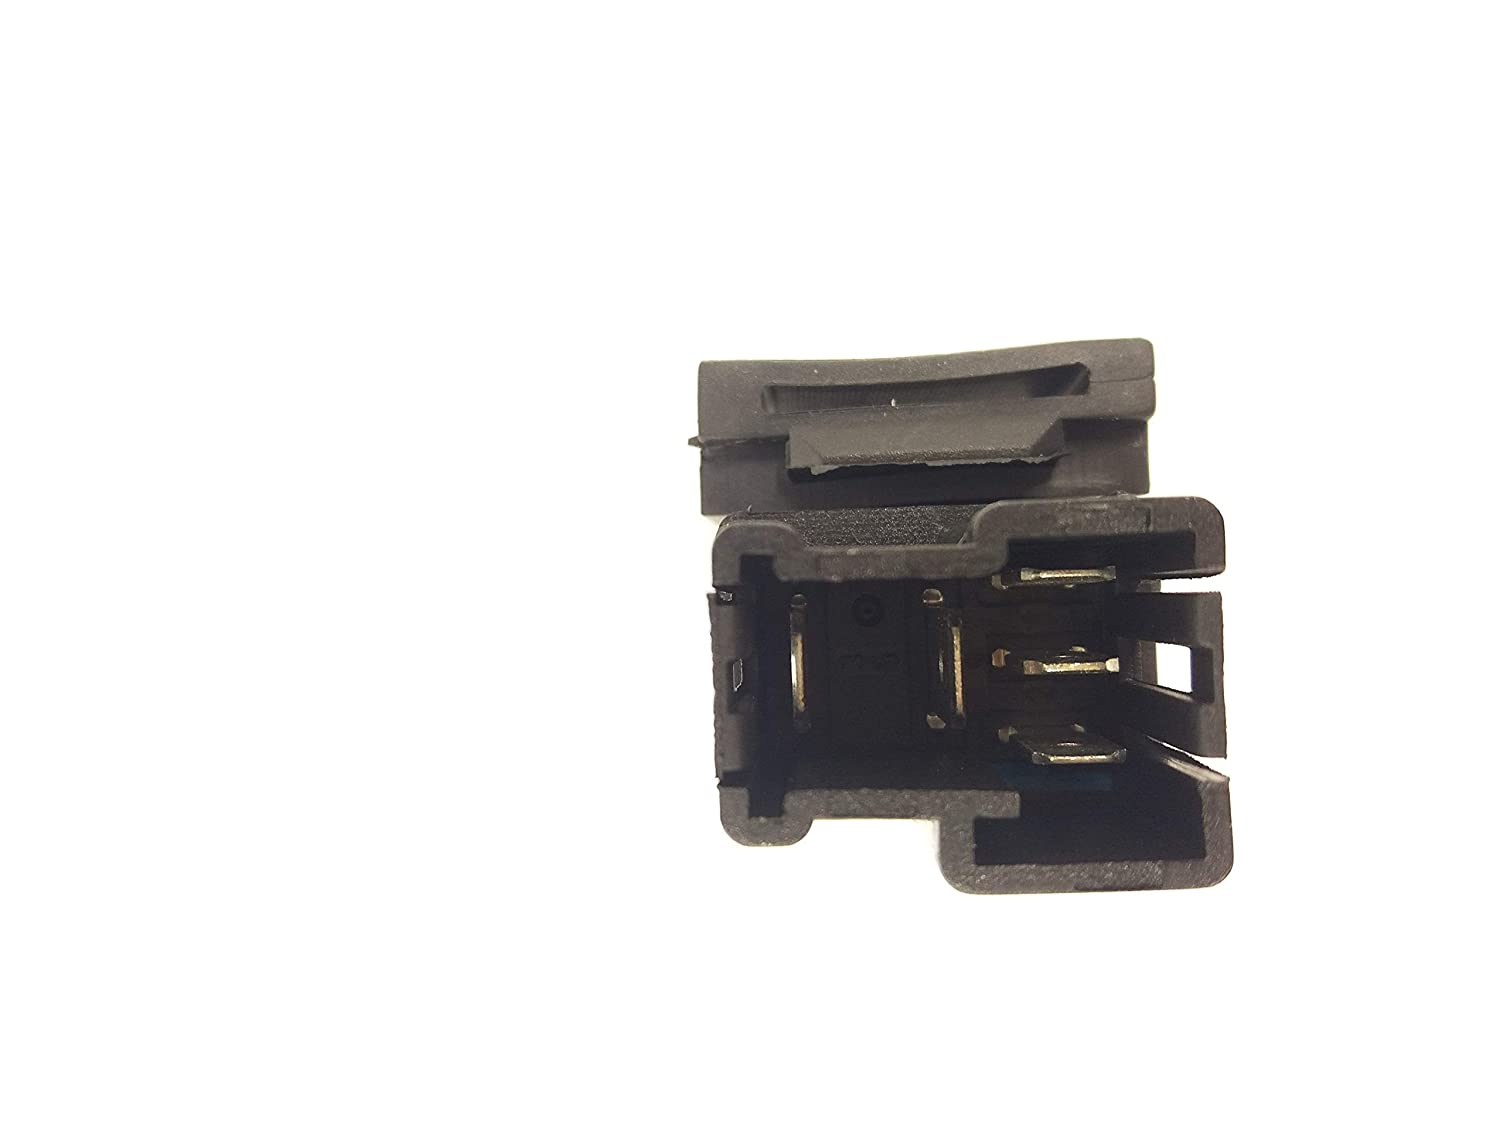 Hity Motor Starter Solenoid Relay For Yamaha APEX RTX ER RX10 2006-2007 GRIZZLY 350 4WD YFM350 2008-2011 GRIZZLY 450 SE YFM450 2007 GRIZZLY 400 4WD YFM400 2008